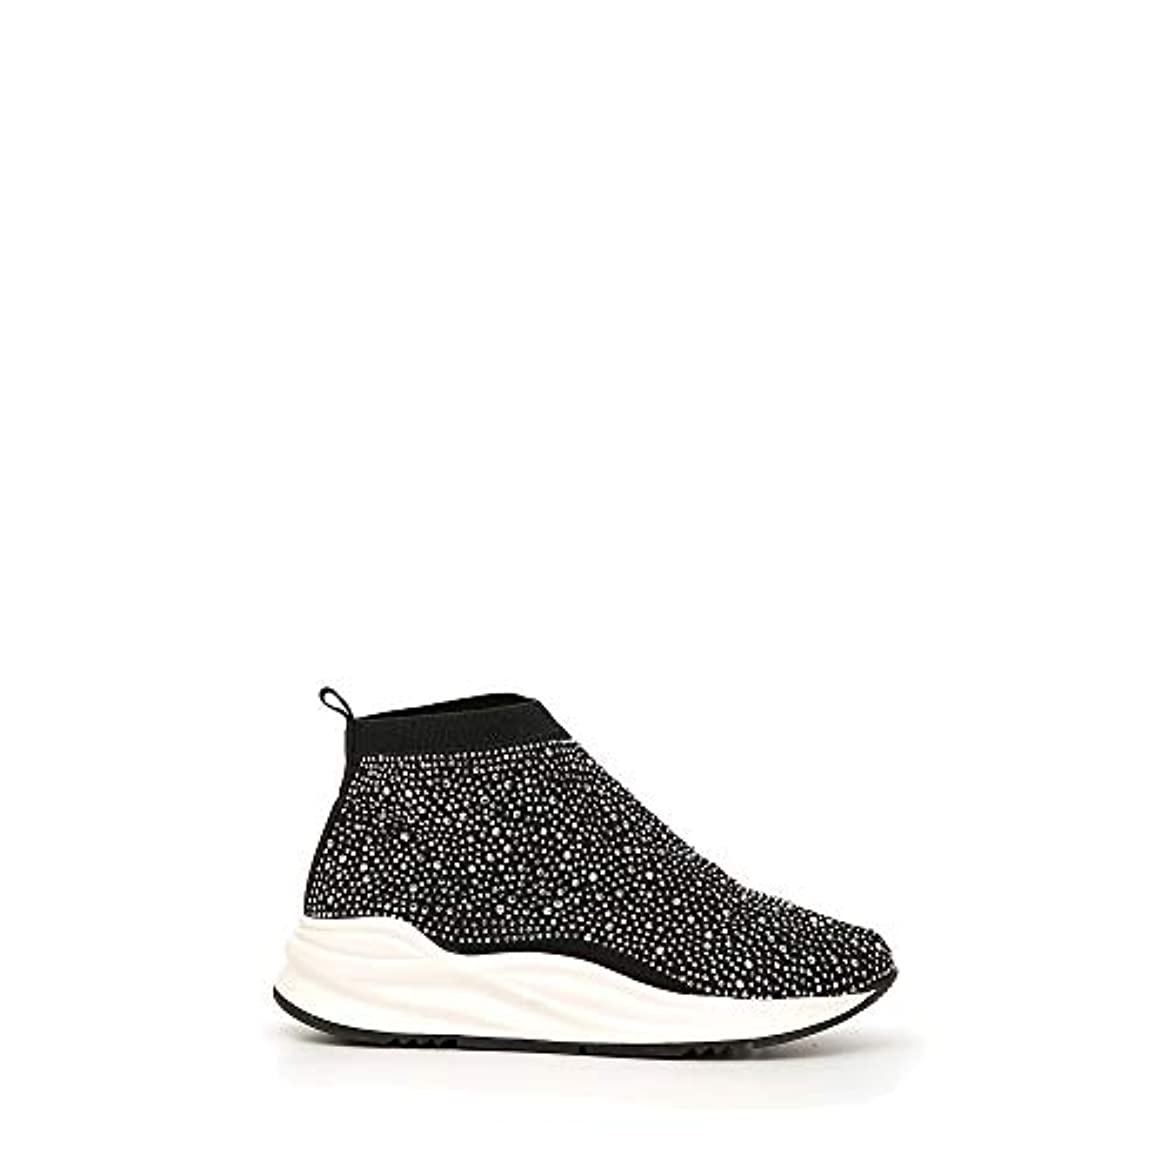 Cafènoir Slip-on Mid Donna In Tessuto Con Strass Da900 35 Eu Nero